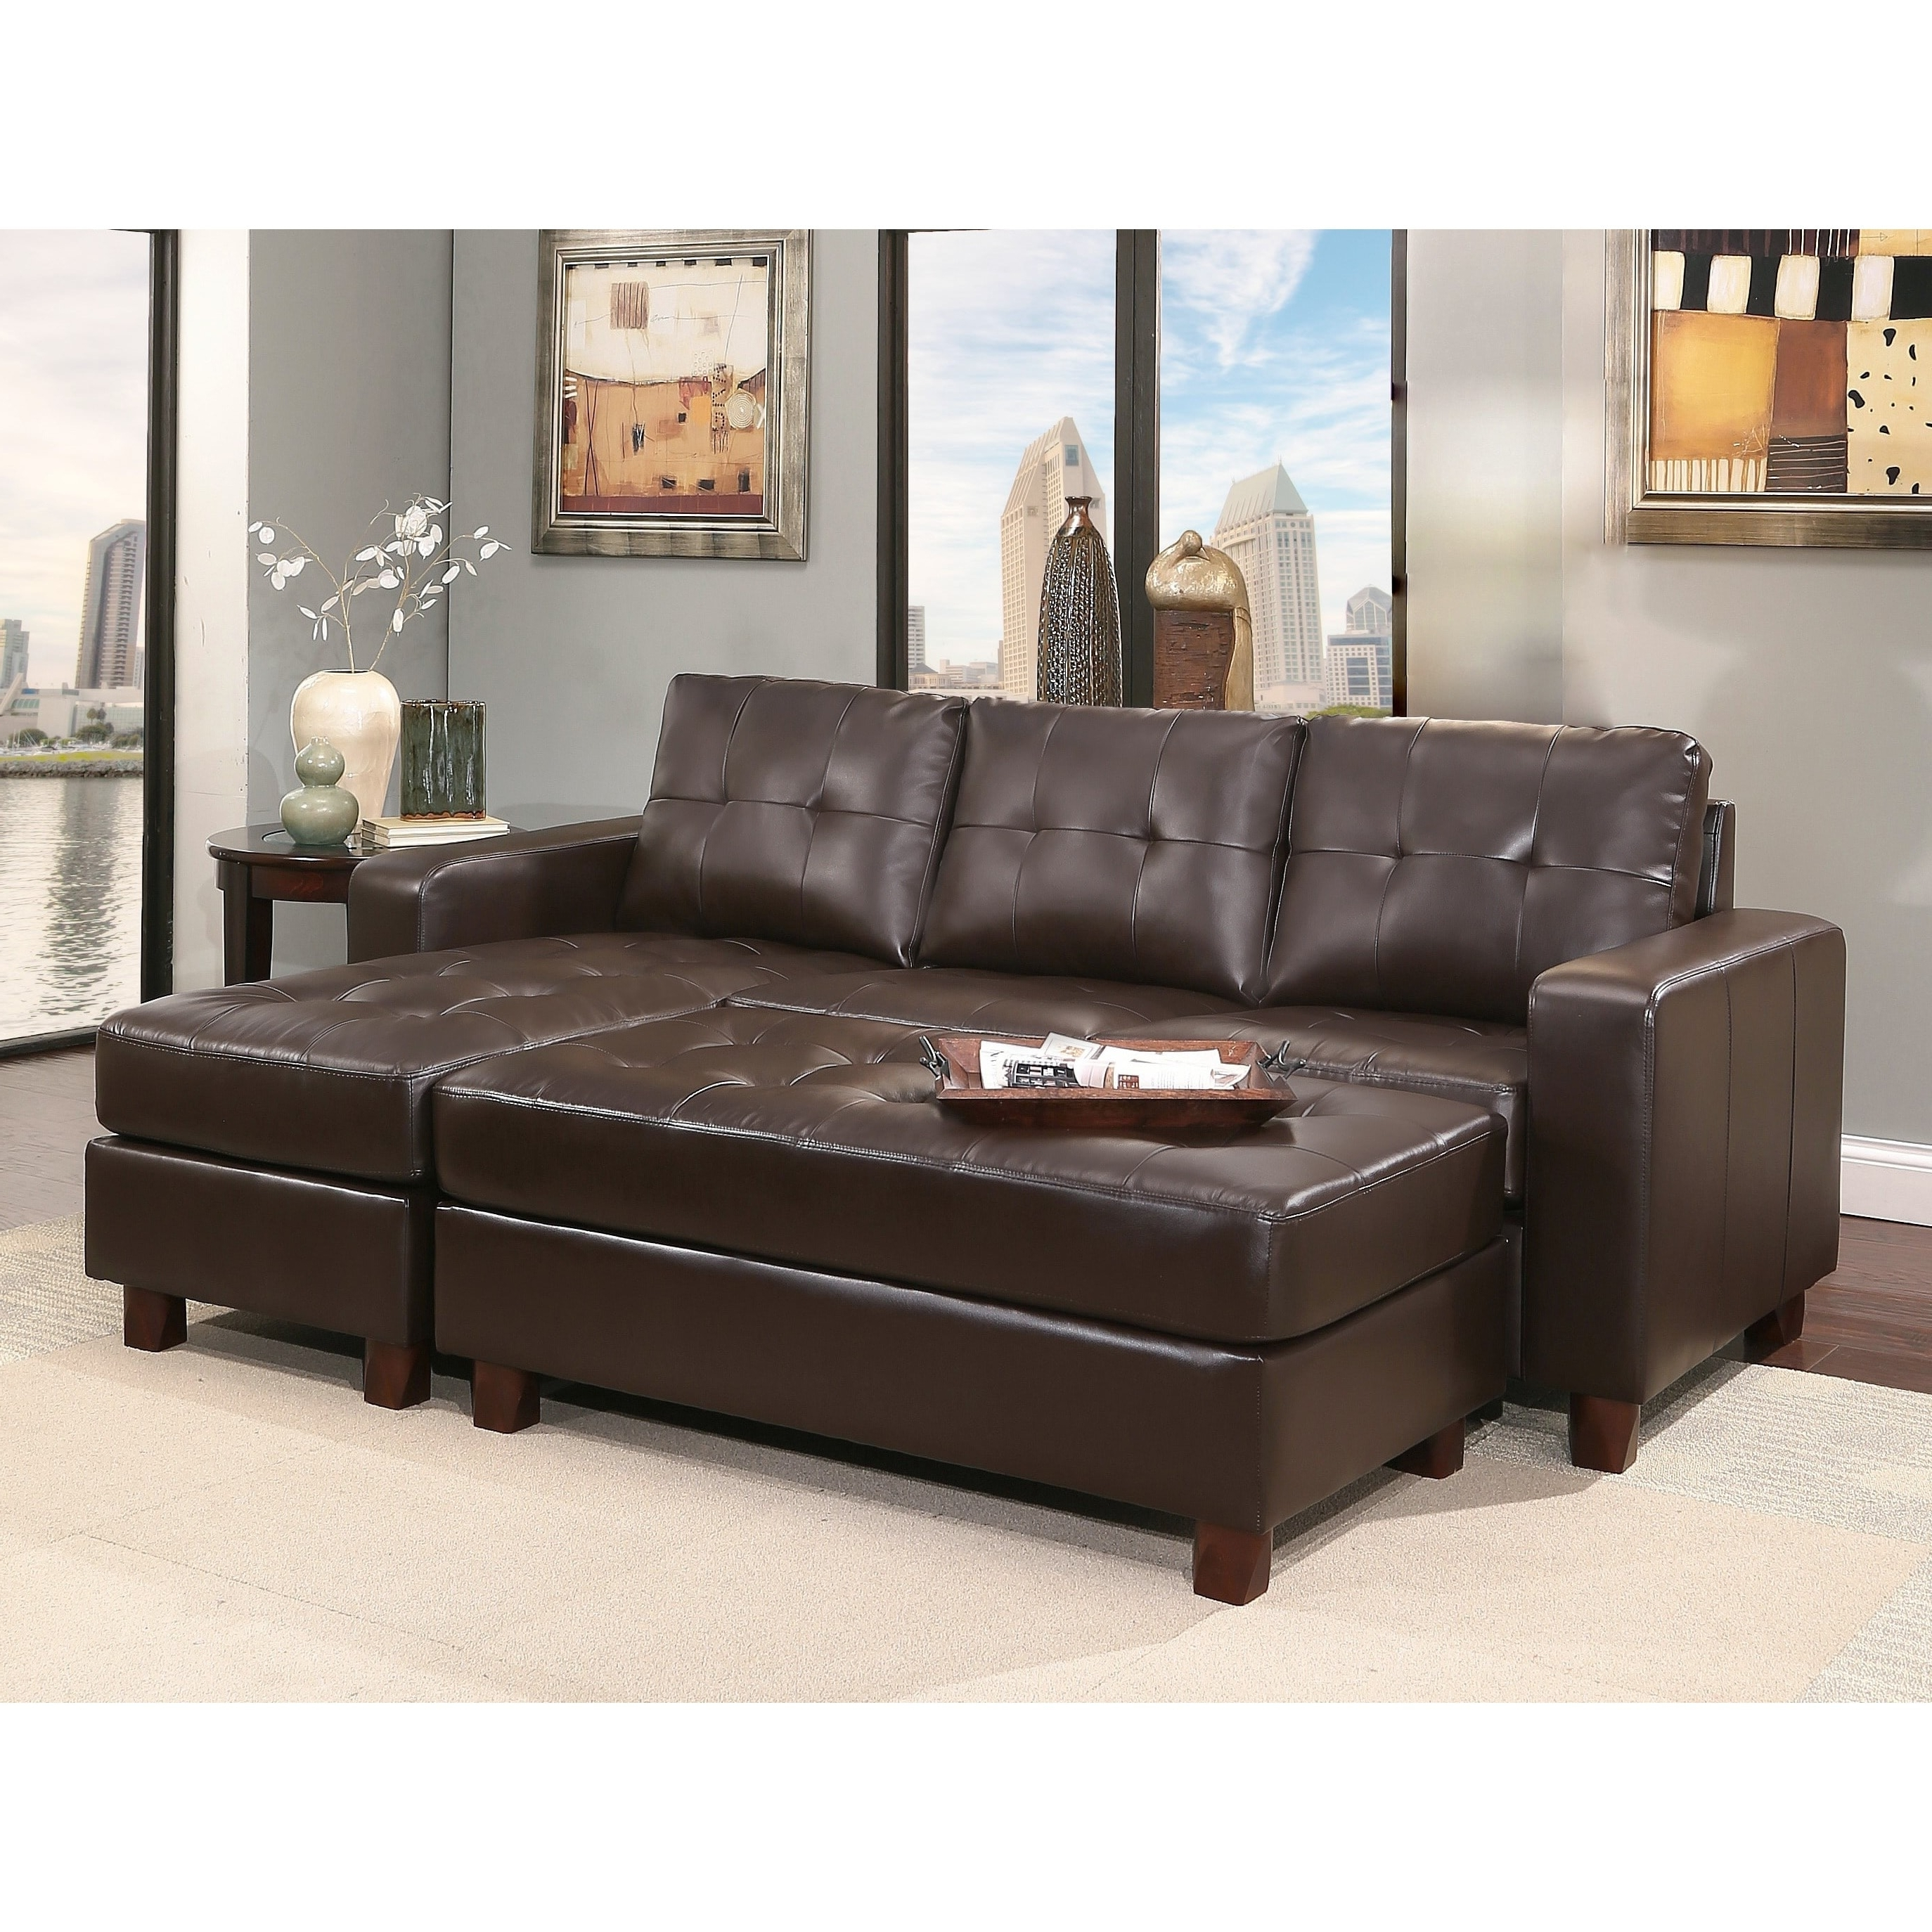 Abbyson Montgomery Leather Reversible Sectional And Ottoman – Free In Widely Used Sectionals With Ottoman (View 2 of 15)